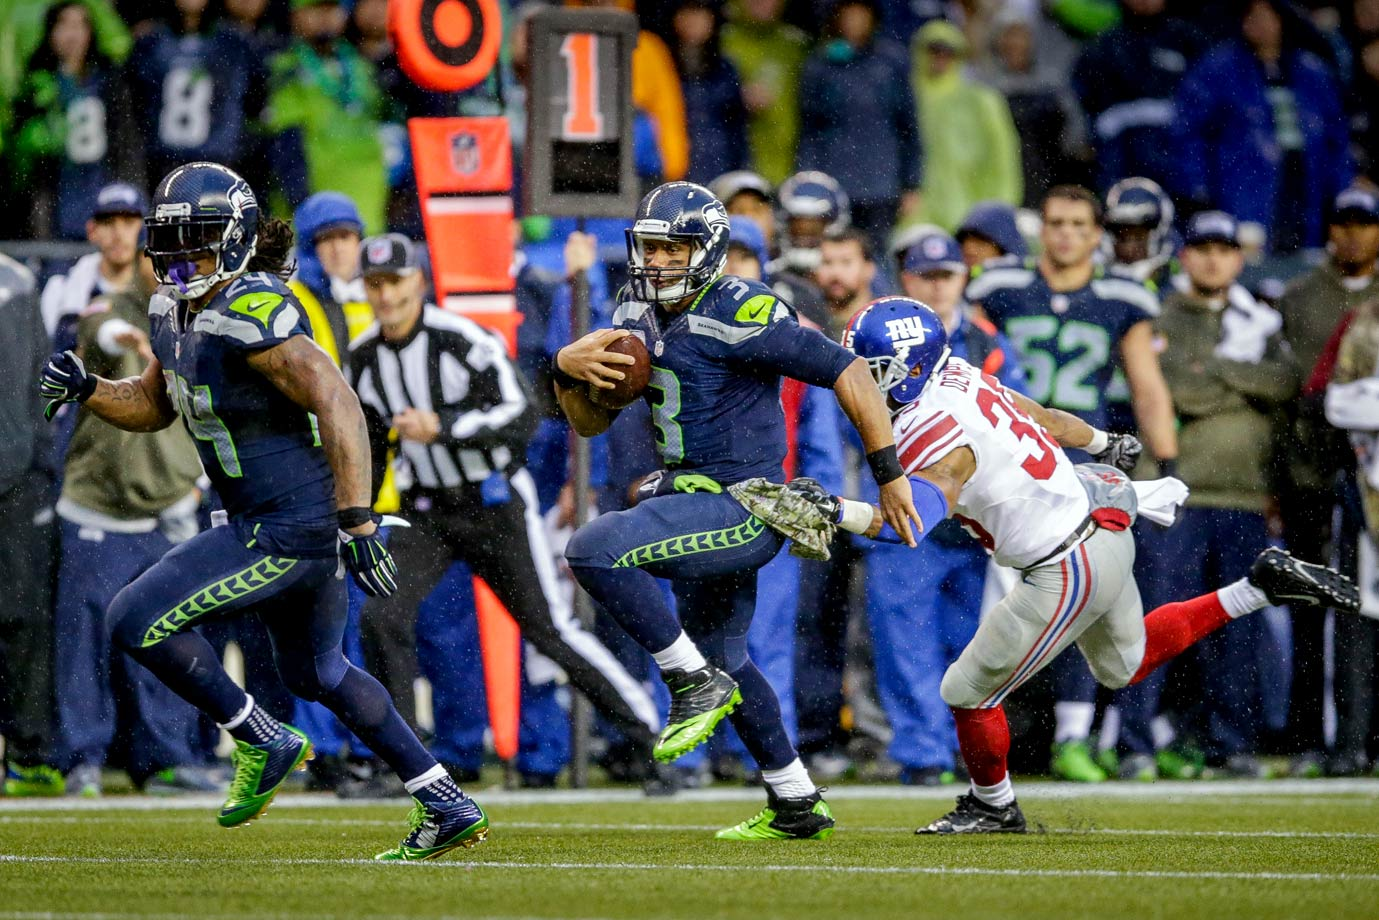 Seattle won its third straight with a dominant rushing performance against the New York Giants. Lynch ran for 140 yards and four touchdowns, and Russell Wilson added 107 yards and a score of his own en route to a 38-17 victory.